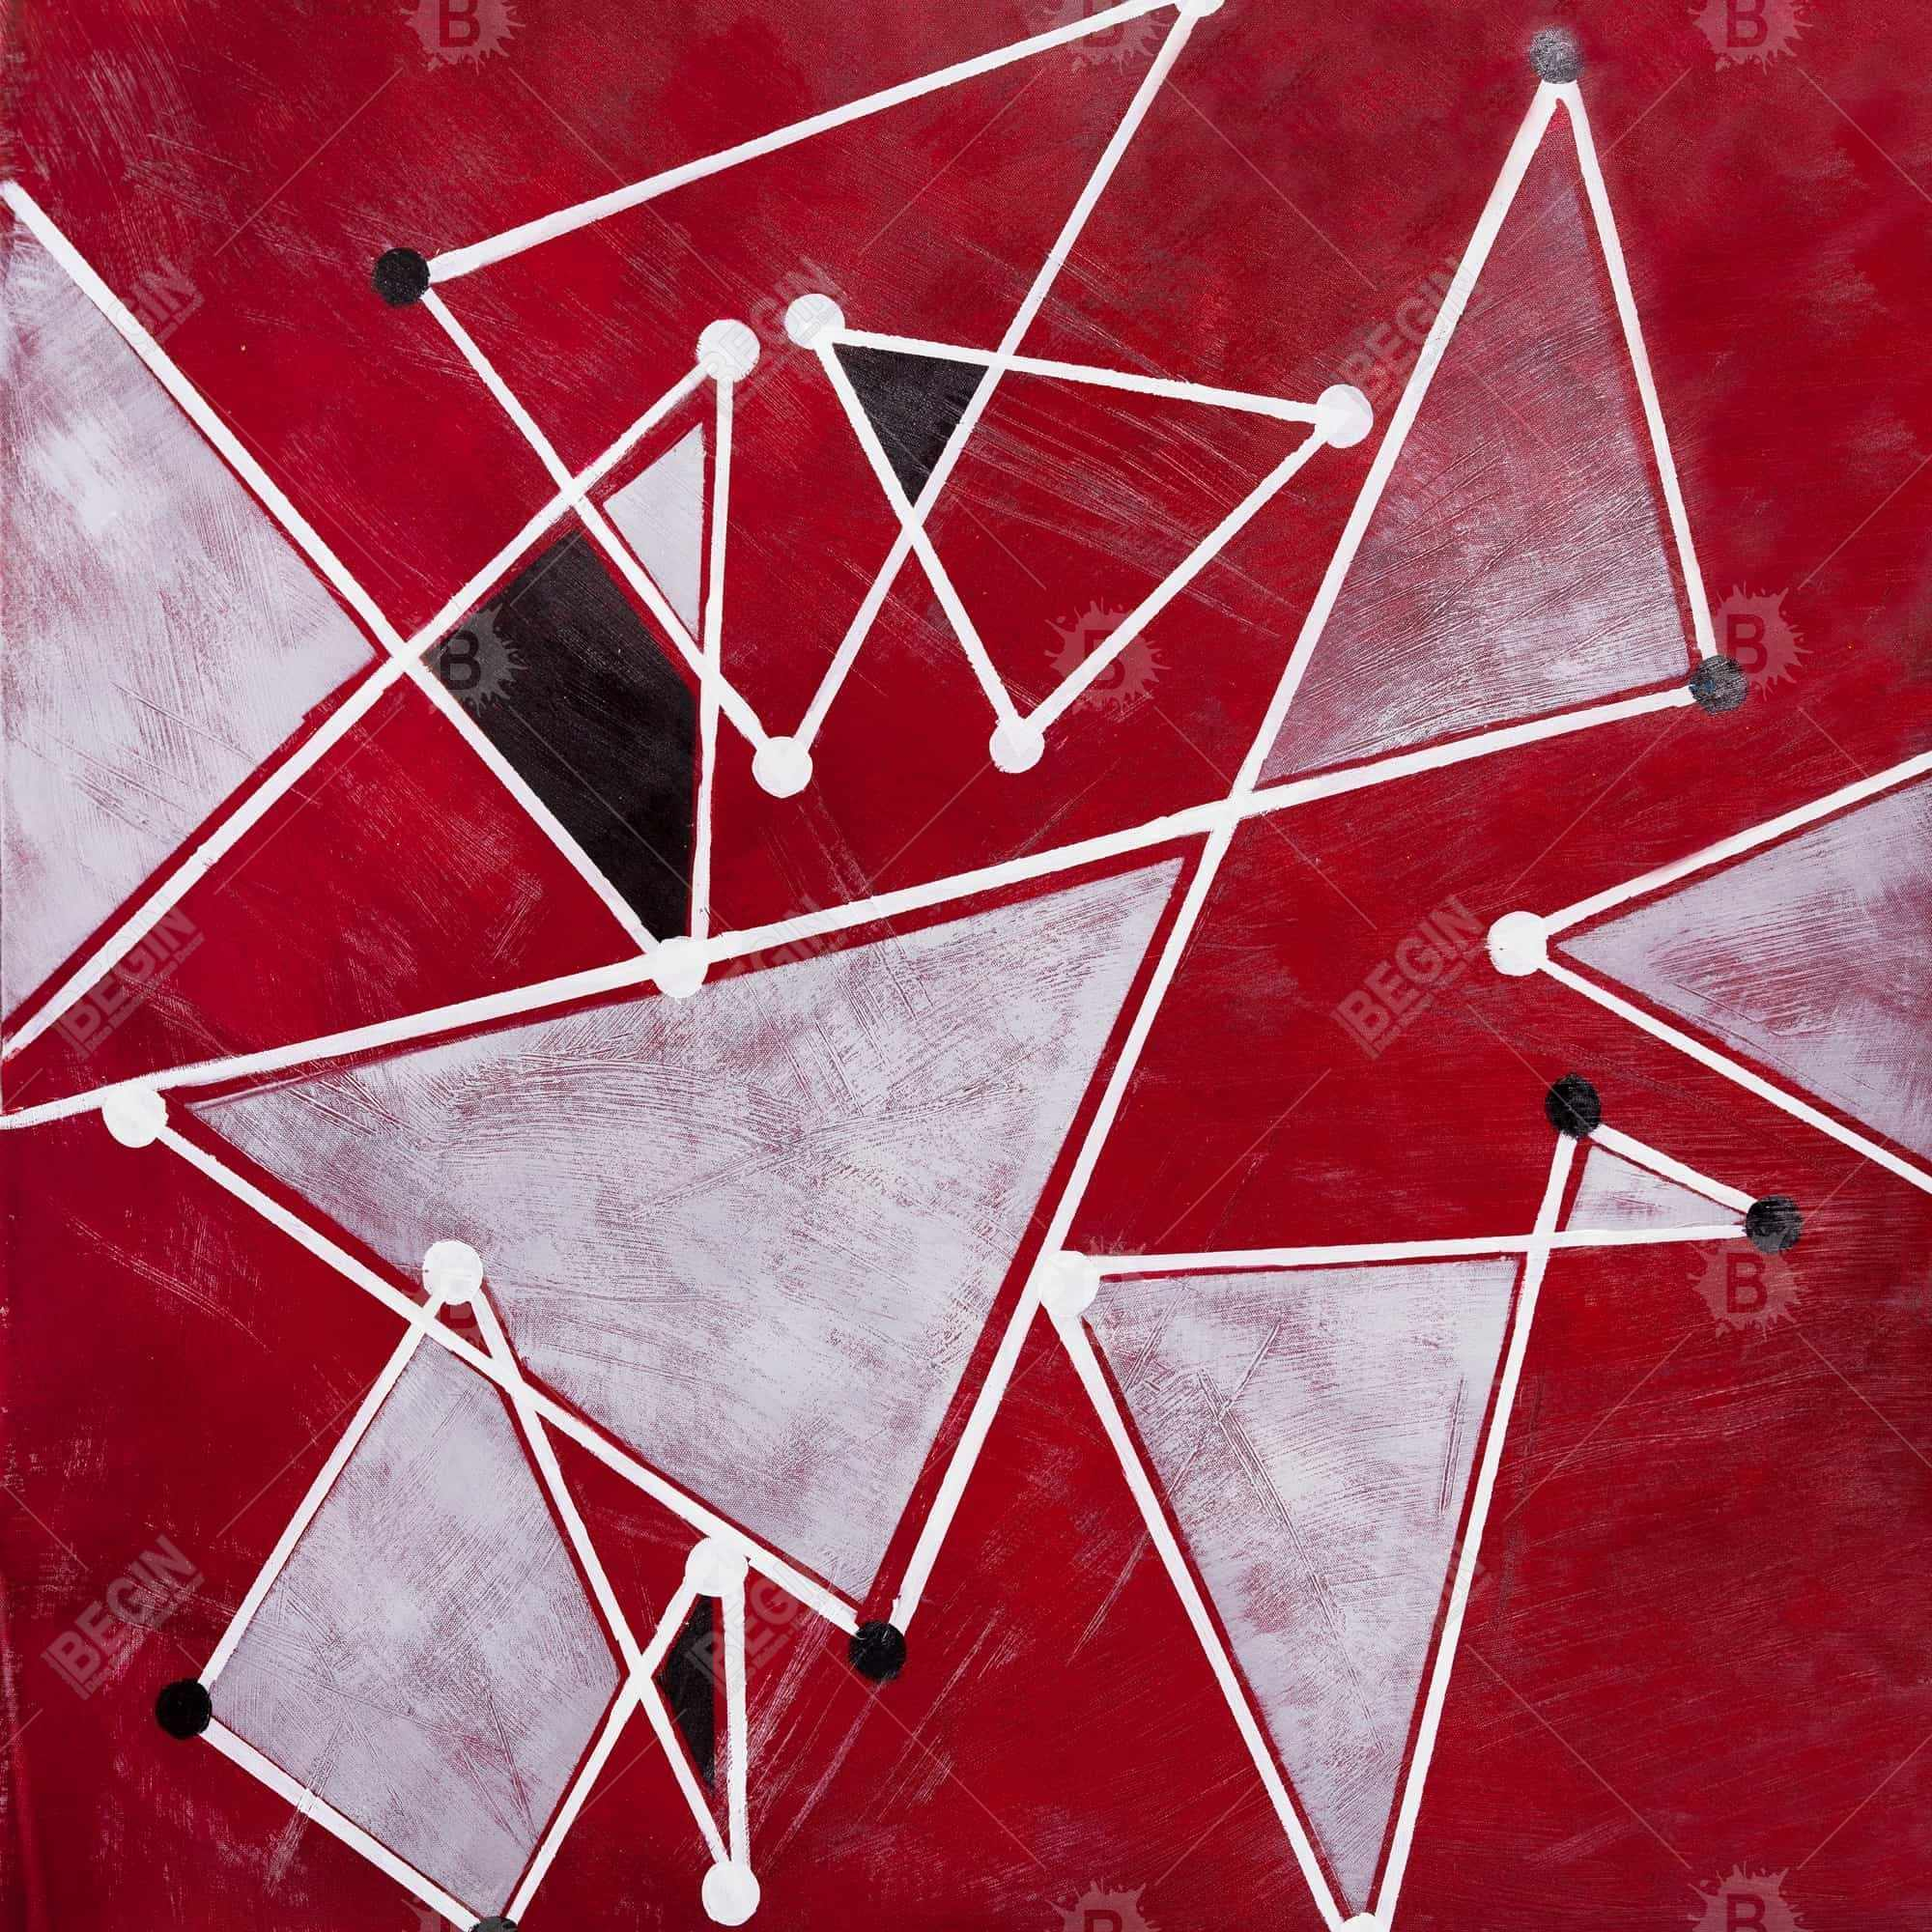 White triangles on red background